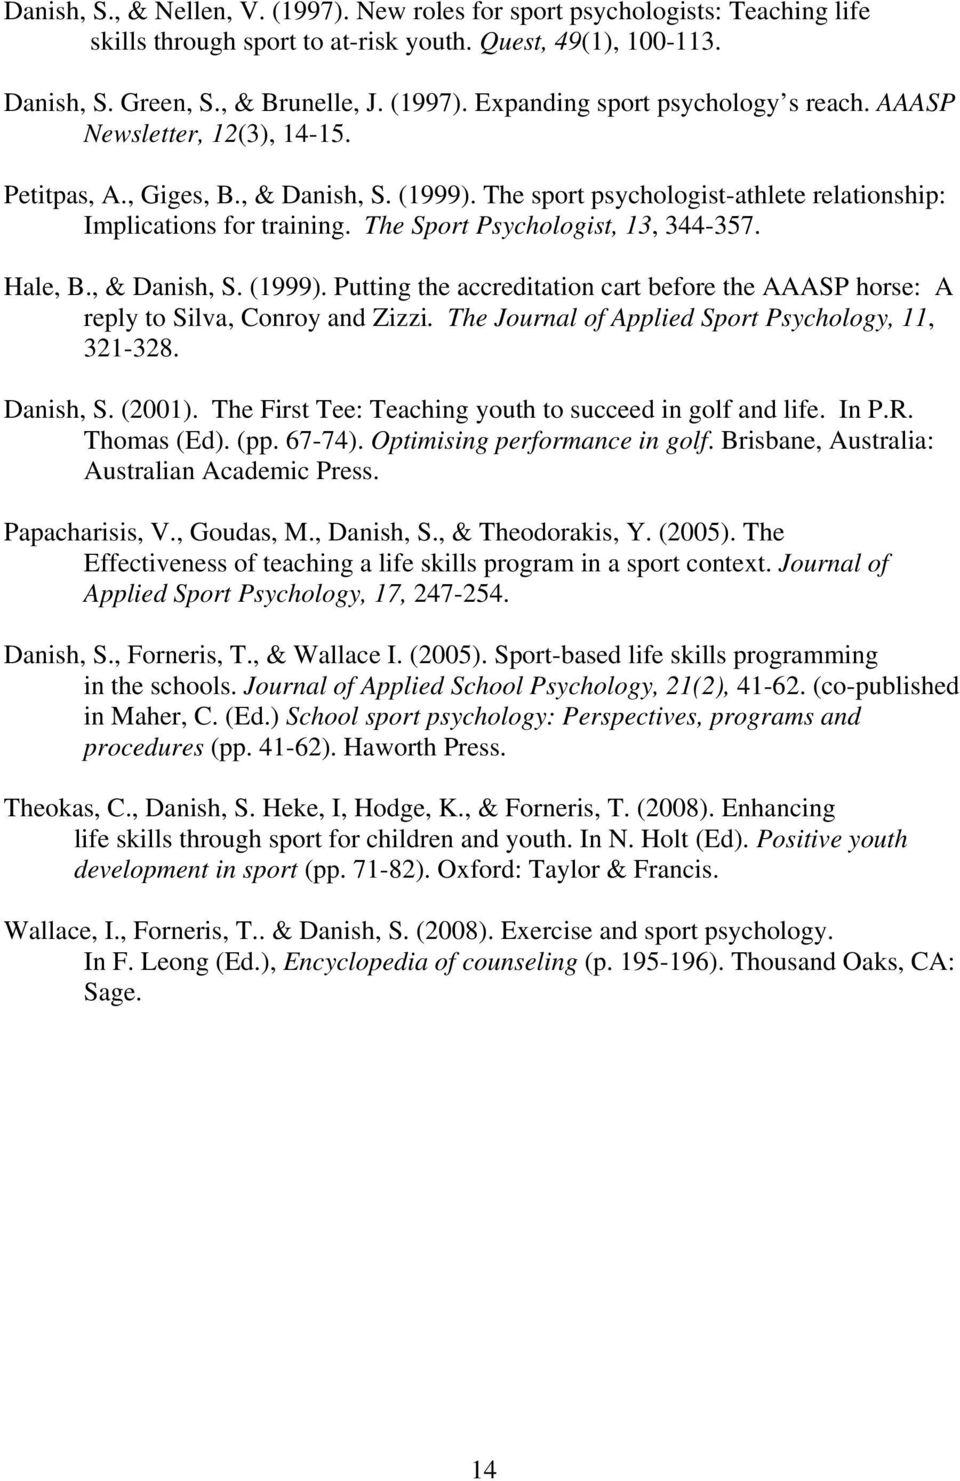 , & Danish, S. (1999). Putting the accreditation cart before the AAASP horse: A reply to Silva, Conroy and Zizzi. The Journal of Applied Sport Psychology, 11, 321-328. Danish, S. (2001).